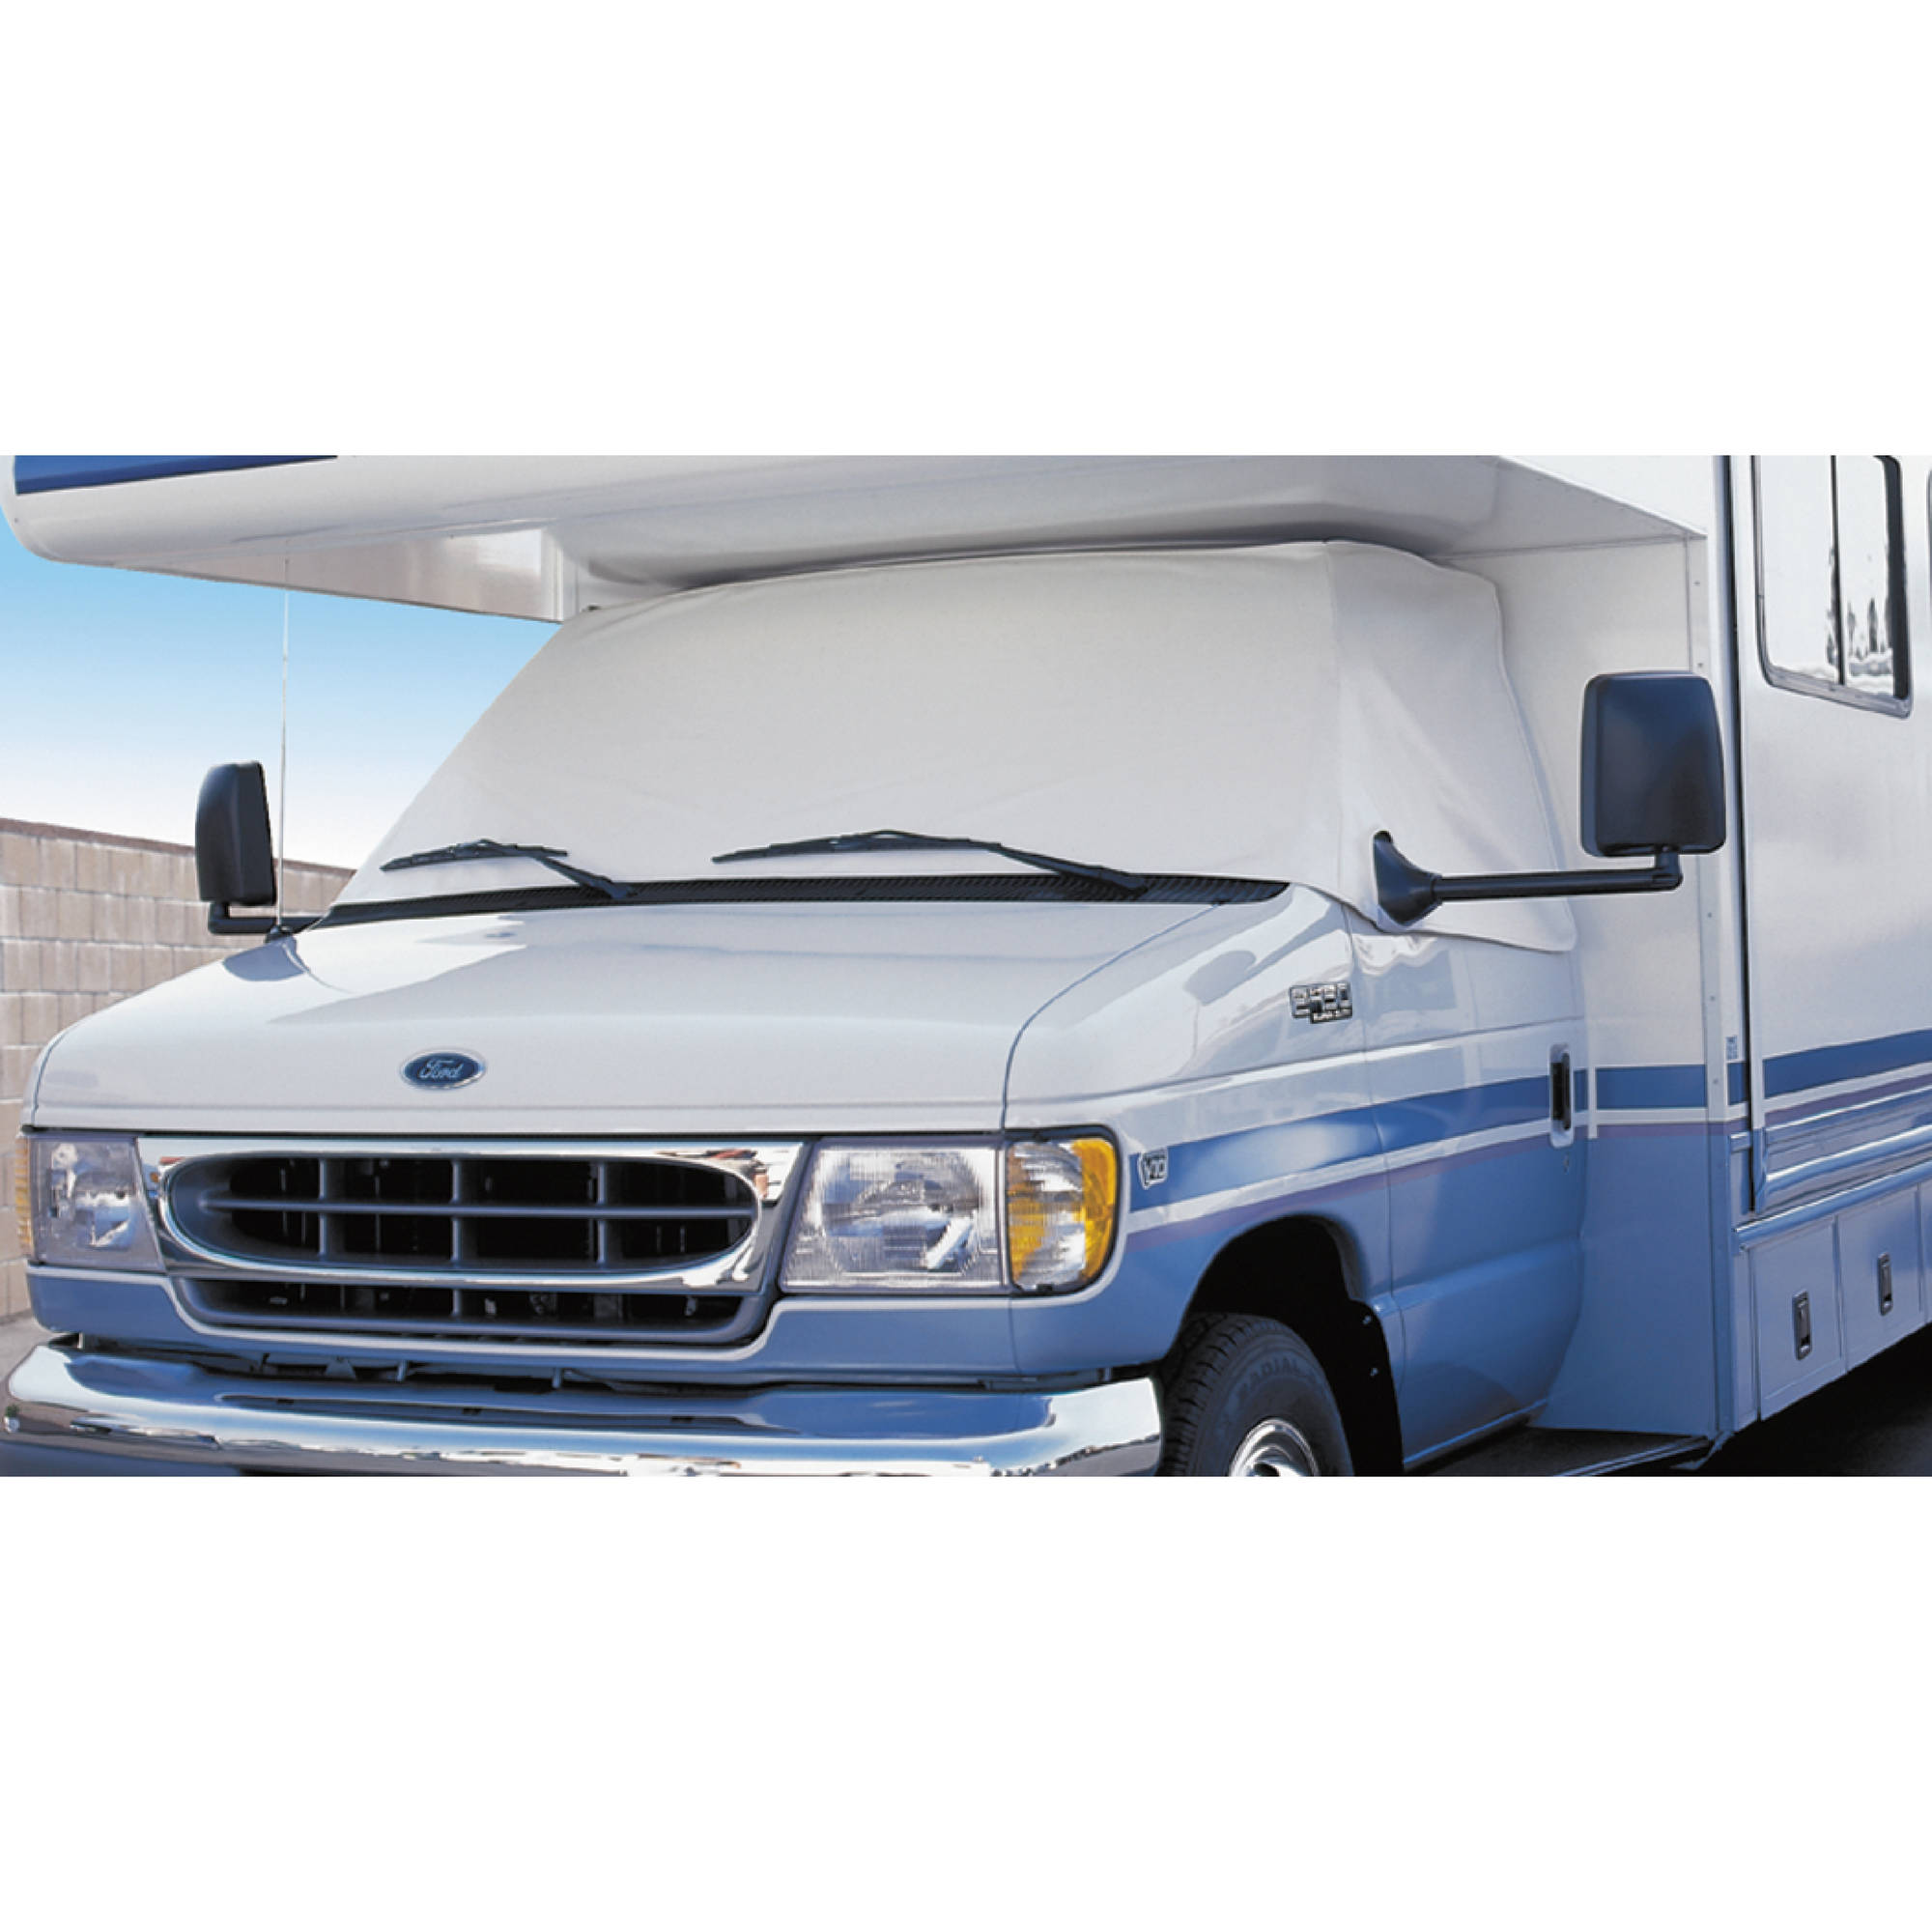 Rv covers adco class c windshield cover for rv white fandeluxe Gallery